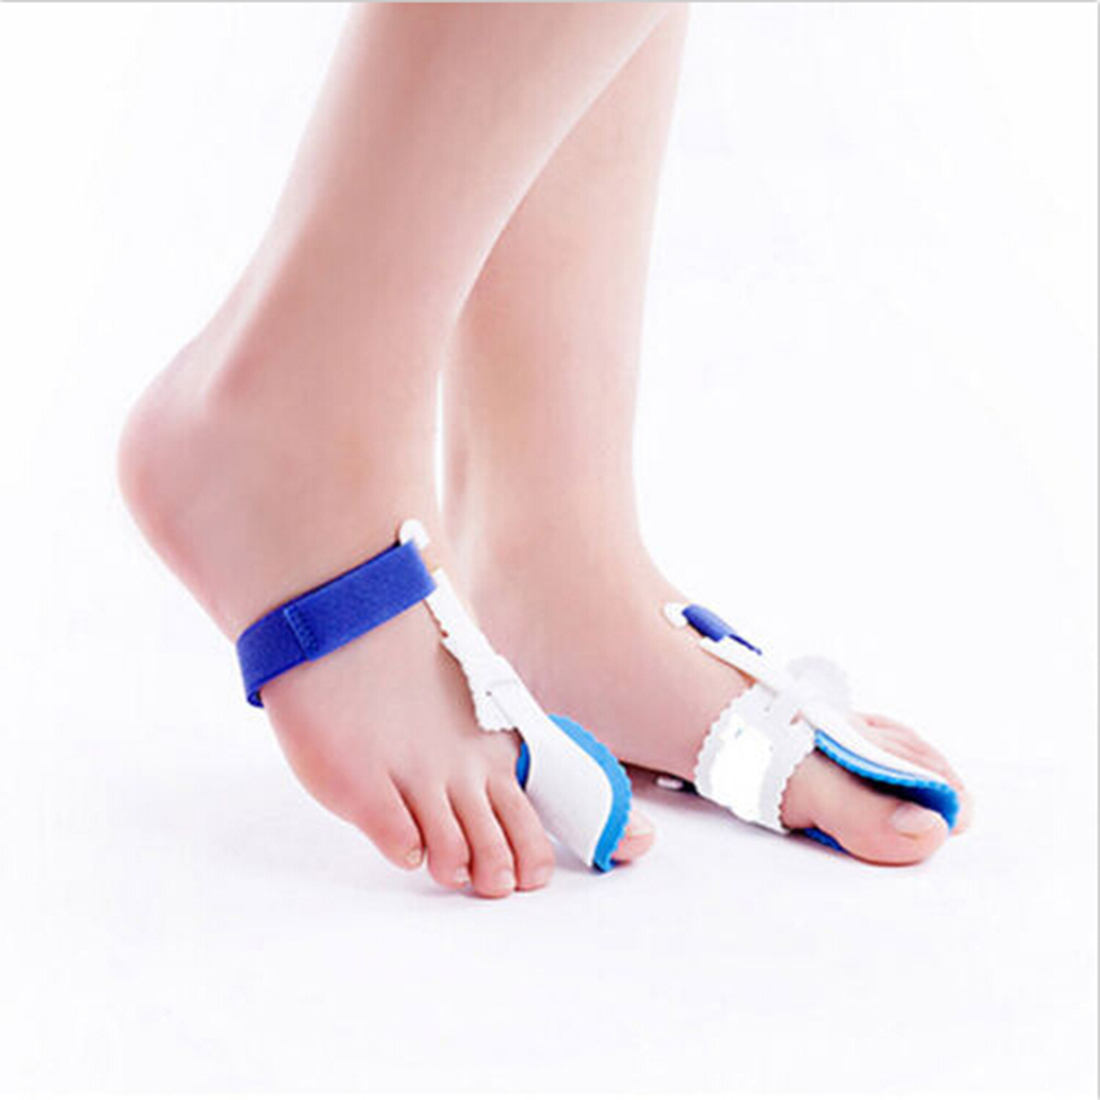 1 pair 2 Pcs Big Toe Straightener bunion hallux valgus Corrector Night Splint relief foot pain foot care цена